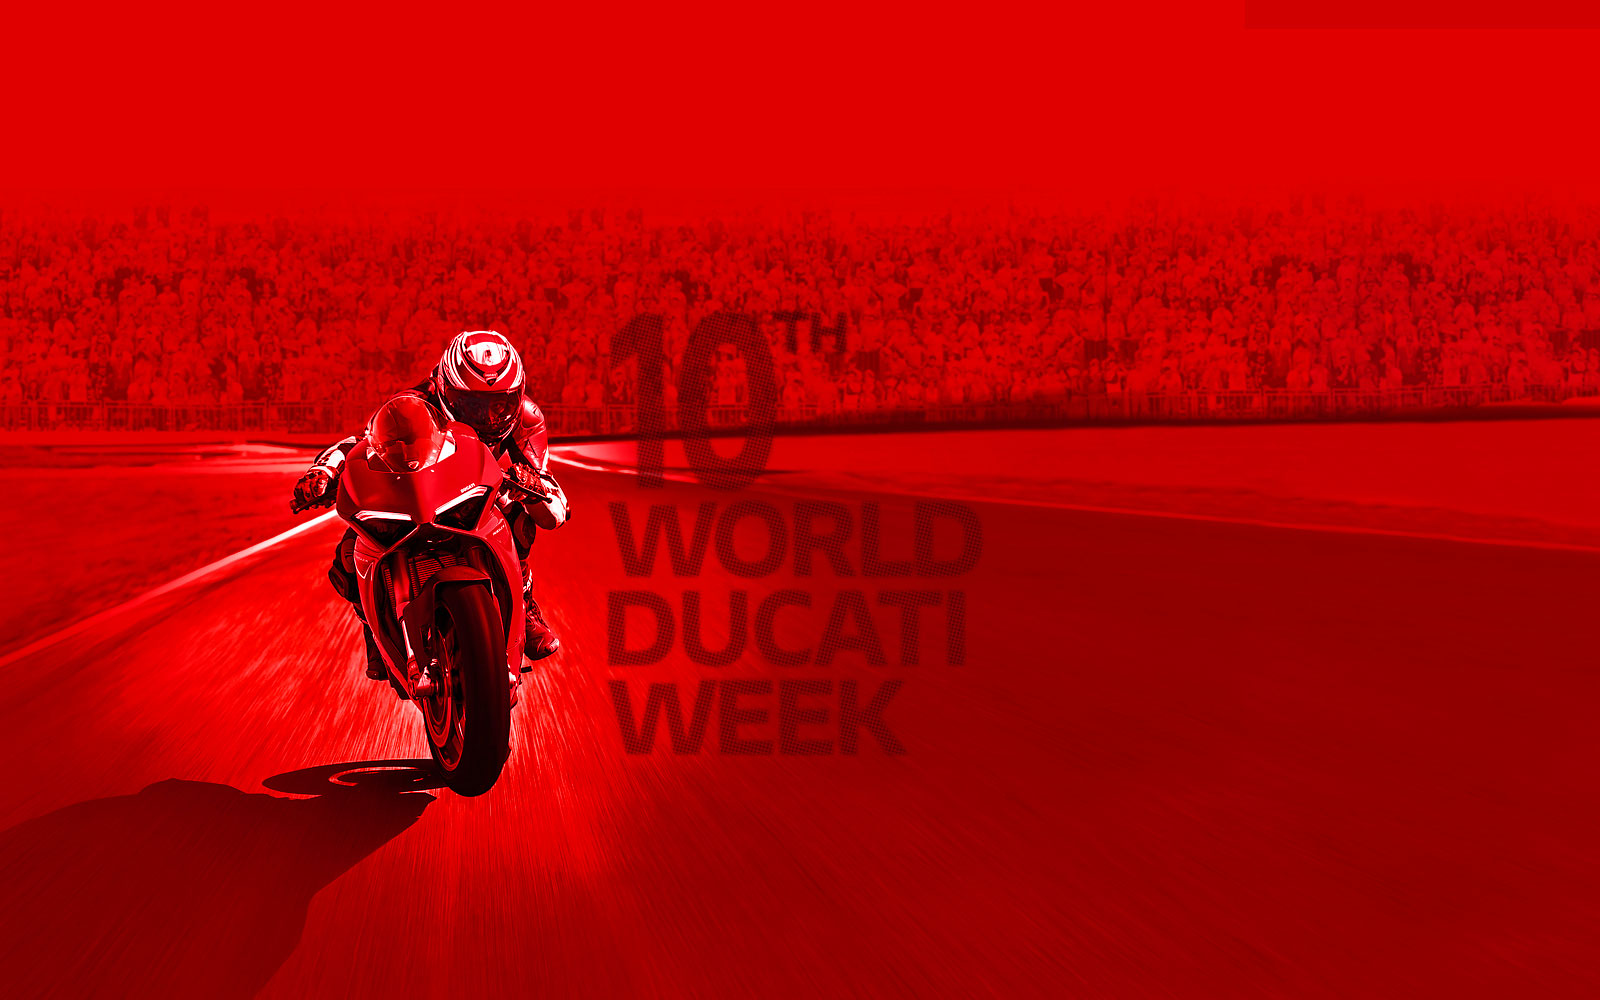 10. World Ducati Week